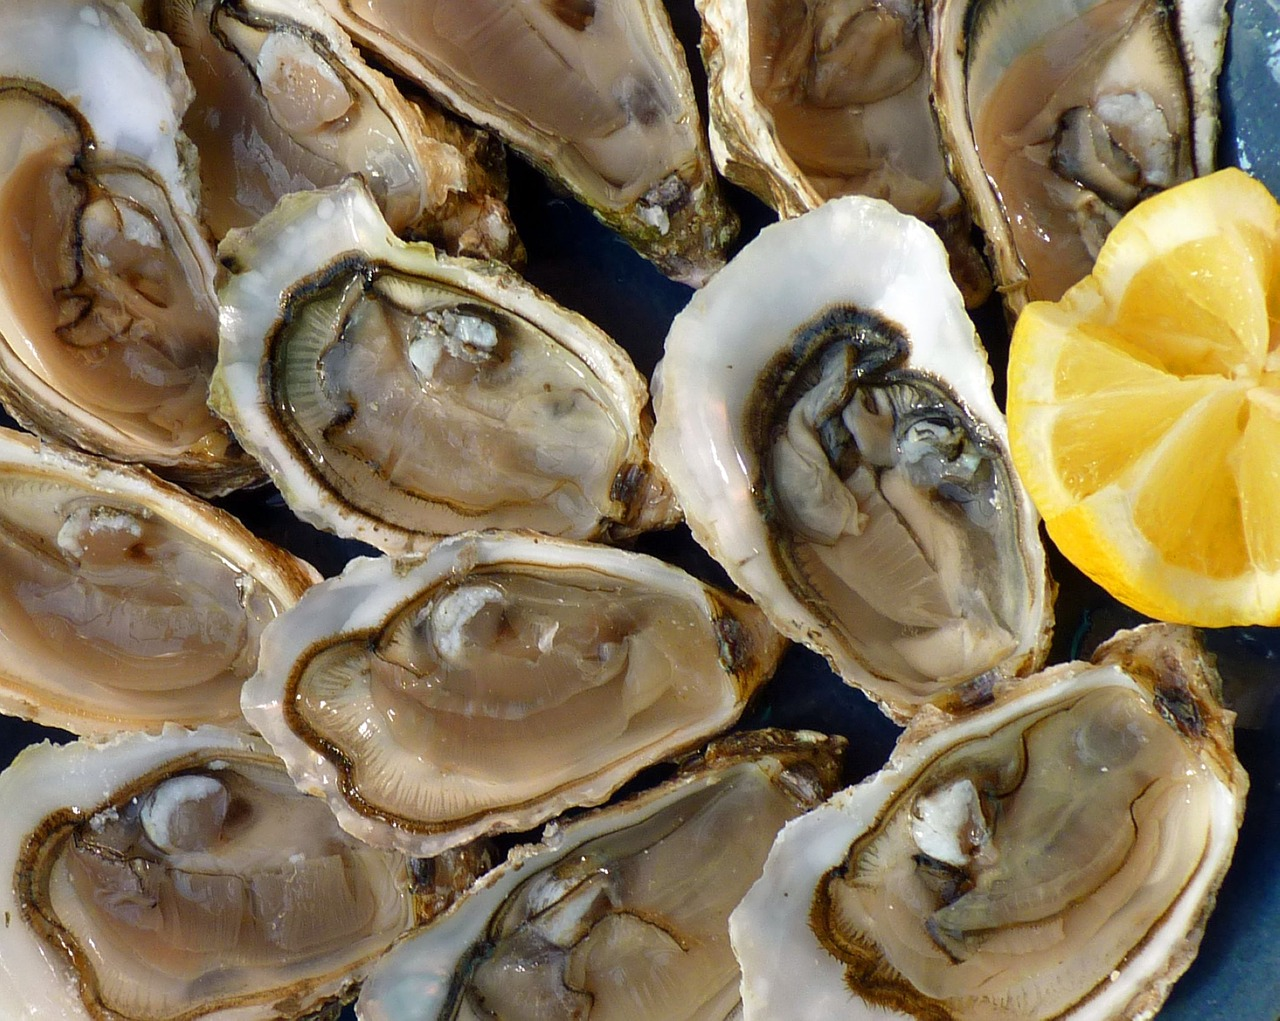 Do Oysters Feel Pain